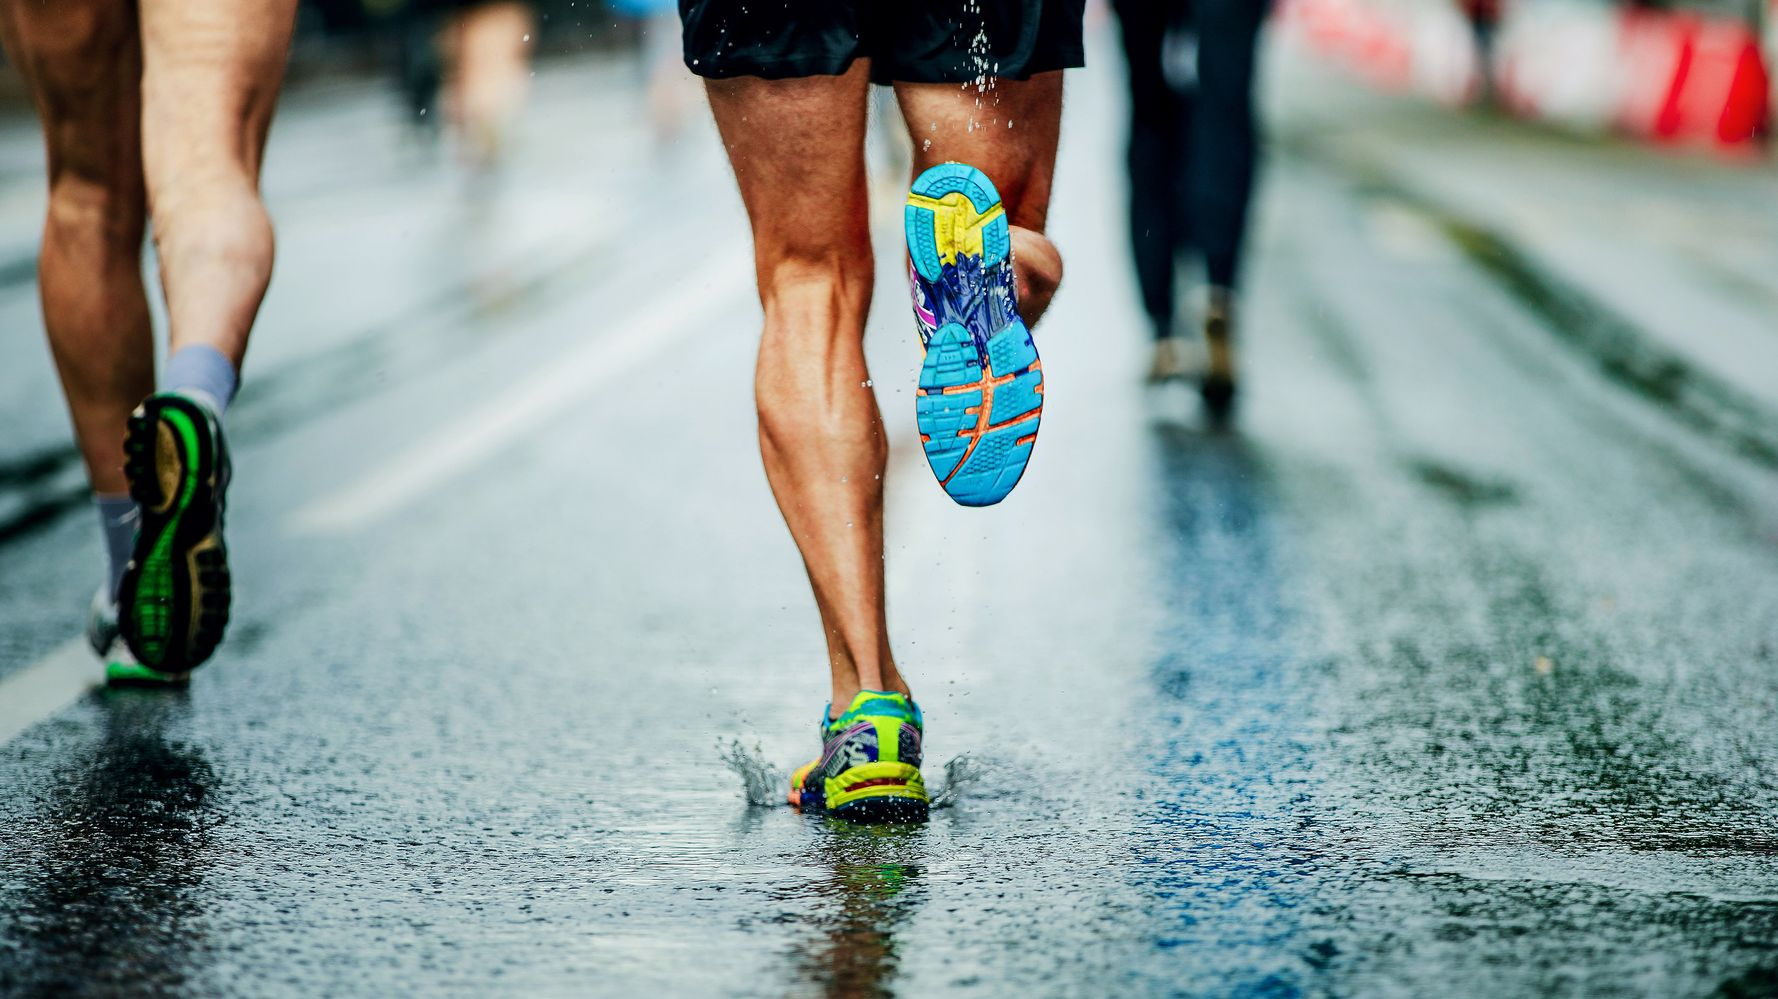 pedir insalubre Asado  The Best Long-Distance Running Shoes, According To Runners | HuffPost Life